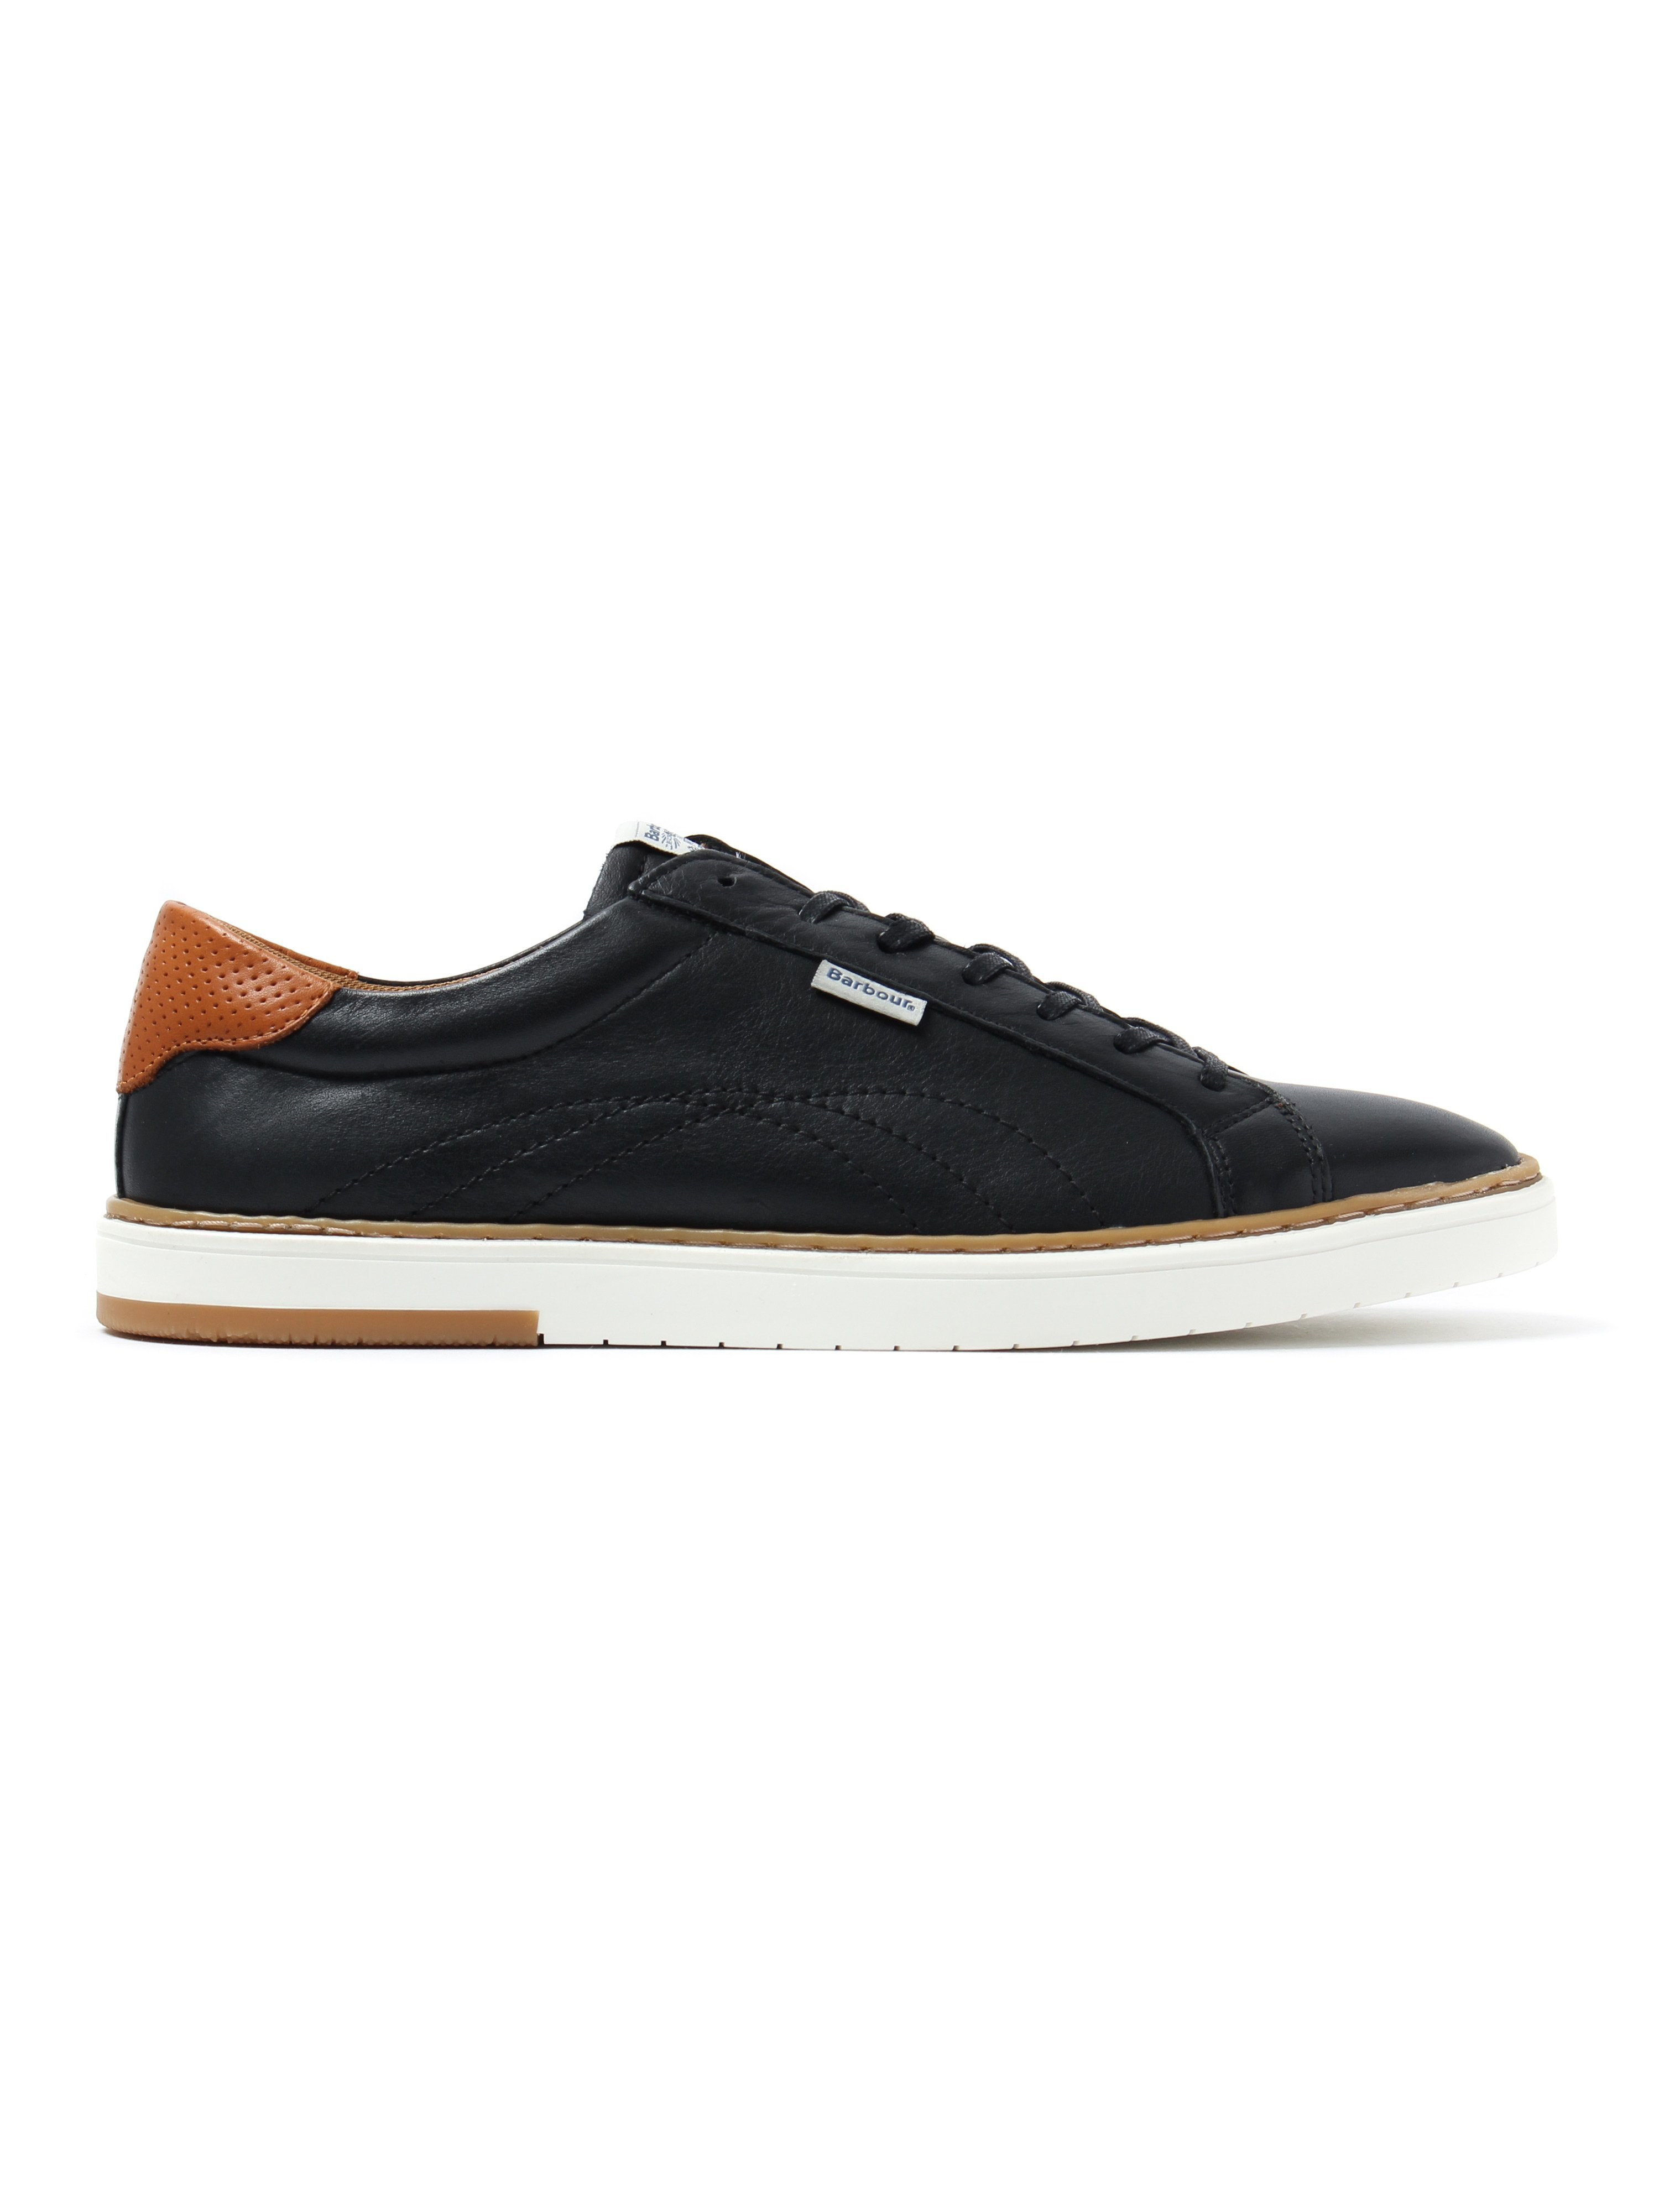 Barbour Men's Howdon Leather Trainers - Black